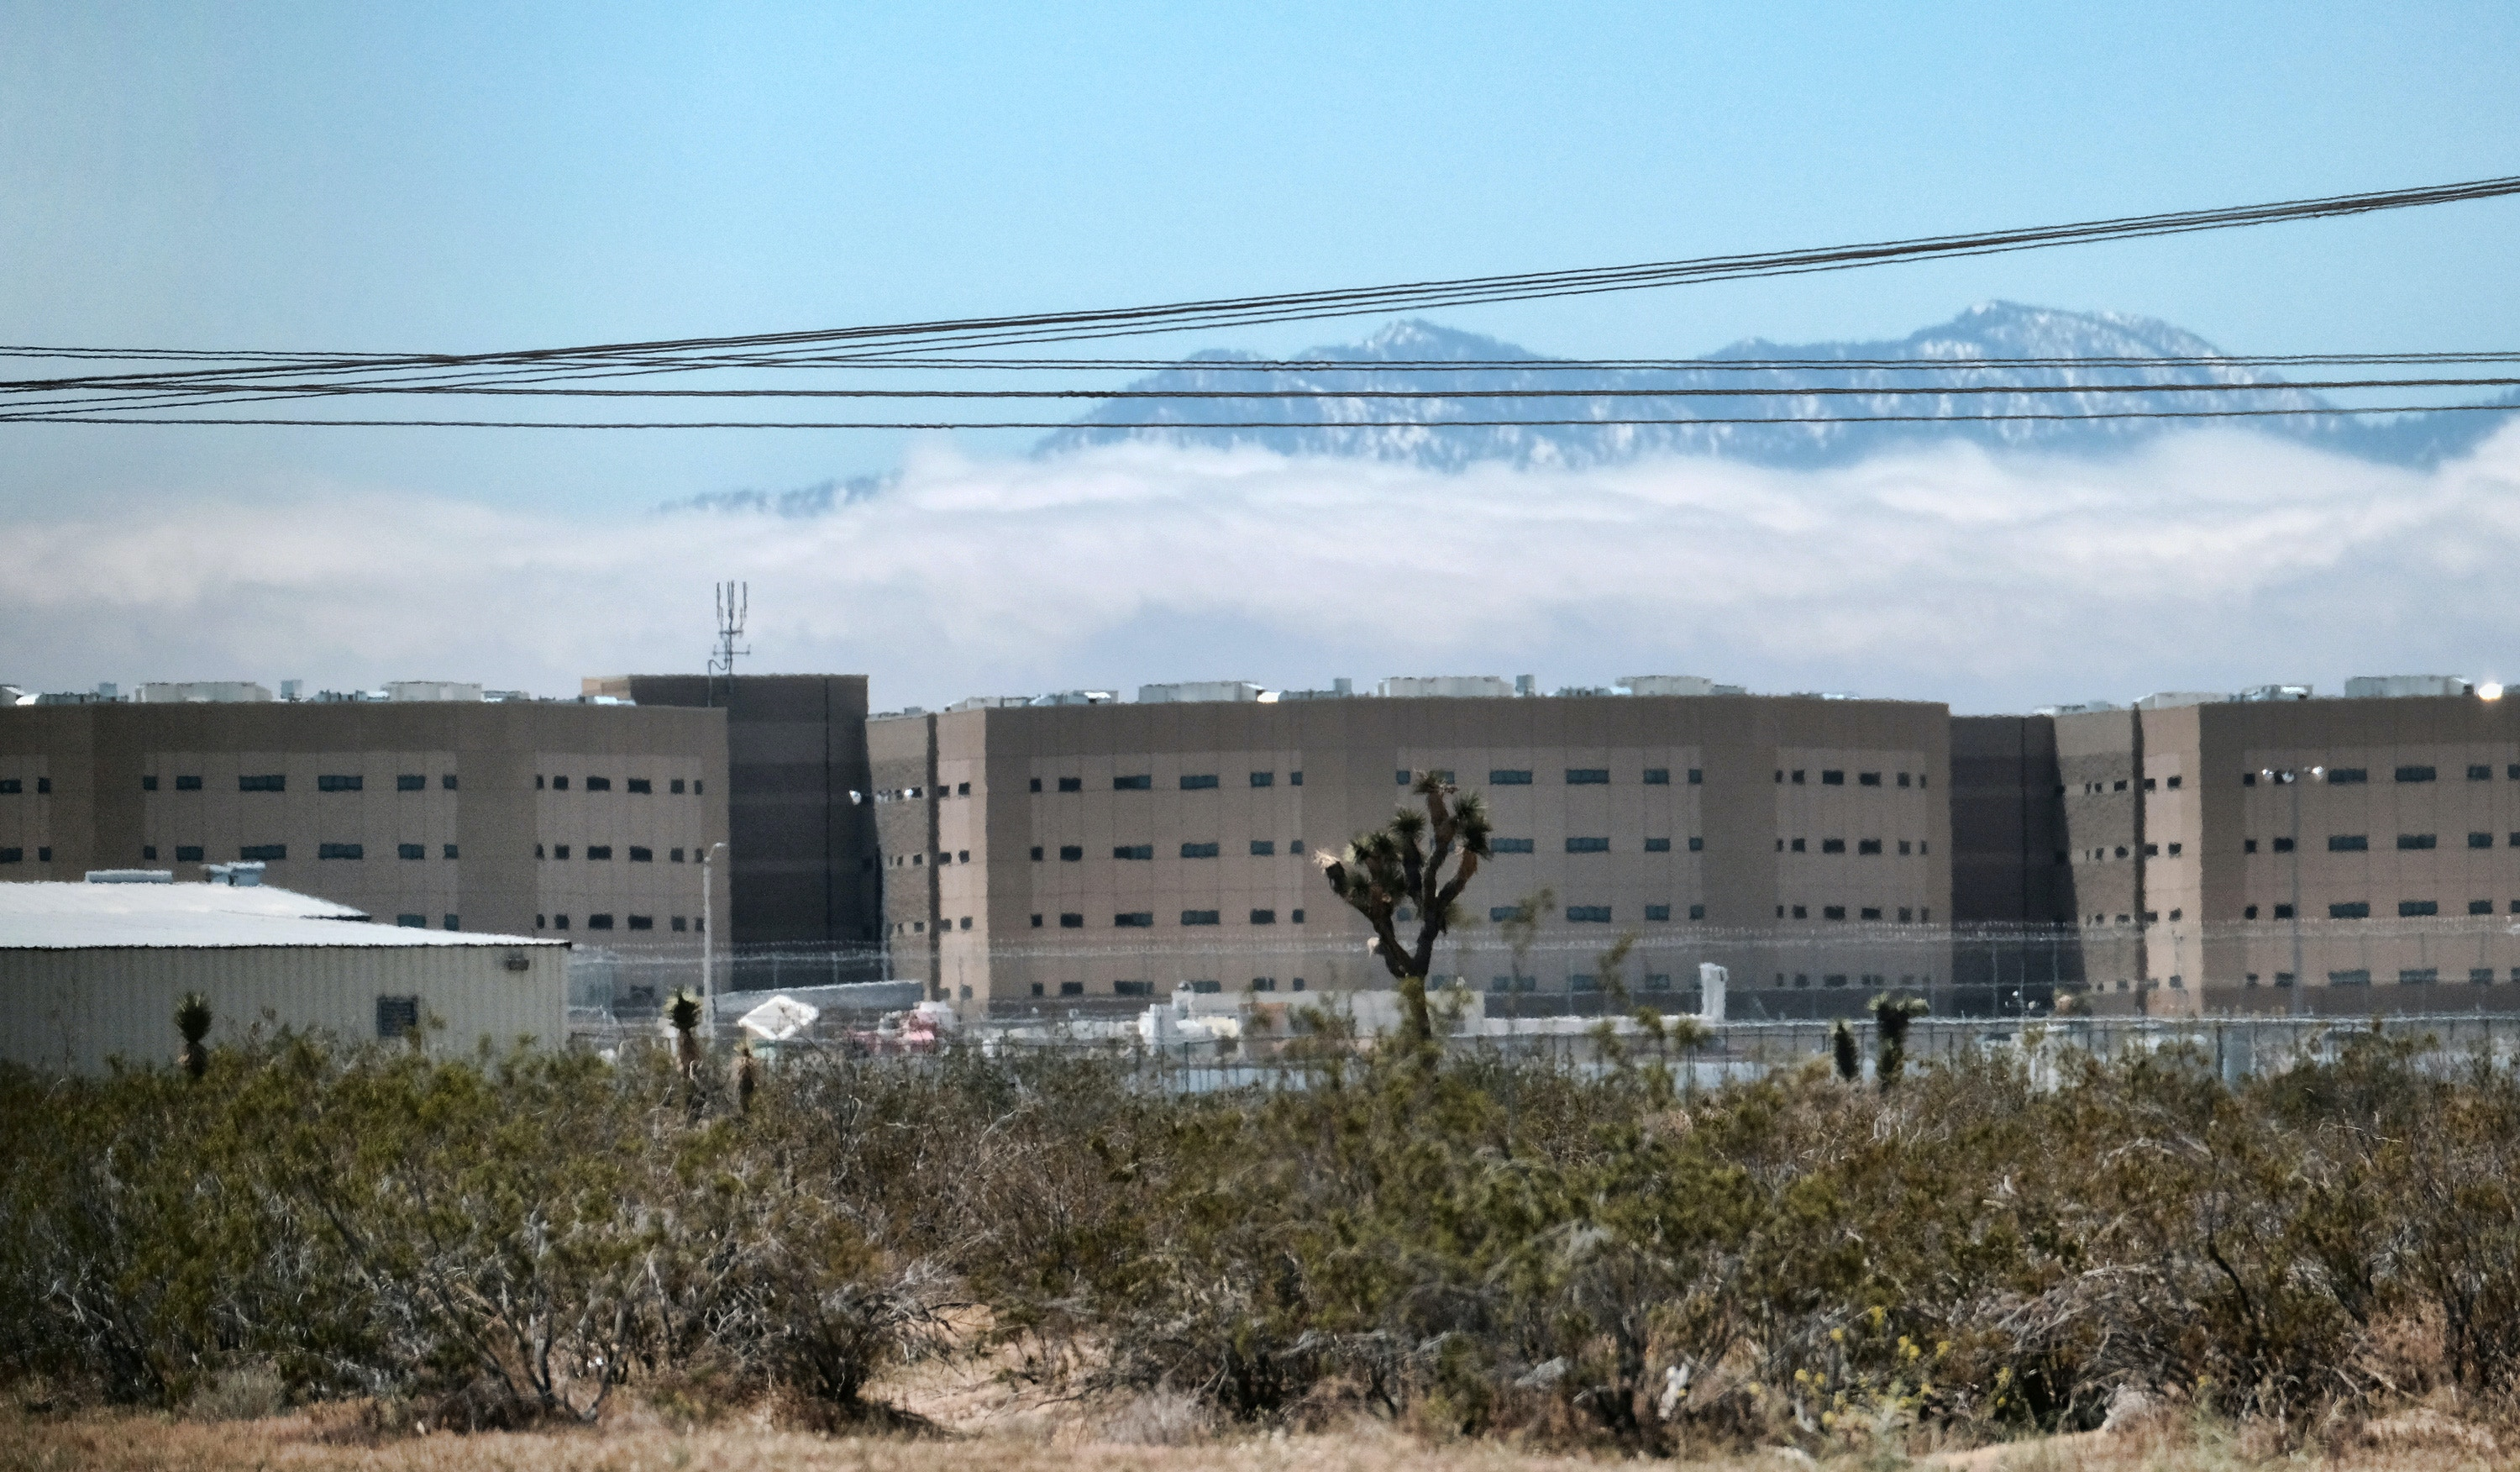 This Saturday April 20, 2019 photo shows the Adelanto Detention Center in Adelanto, Calif., a desert community northeast of Los Angeles. For nearly eight years, Adelanto has joined with a private prison company and federal officials to run California's largest immigration detention facility. Now, the city of Adelanto is backing out of its contract to run the 1,900 bed facility amid complaints of shoddy conditions and inadequate medical care. But ending the deal won't necessarily shutter the center and rather, could pave the way for its expansion. (AP Photo/Richard Vogel)